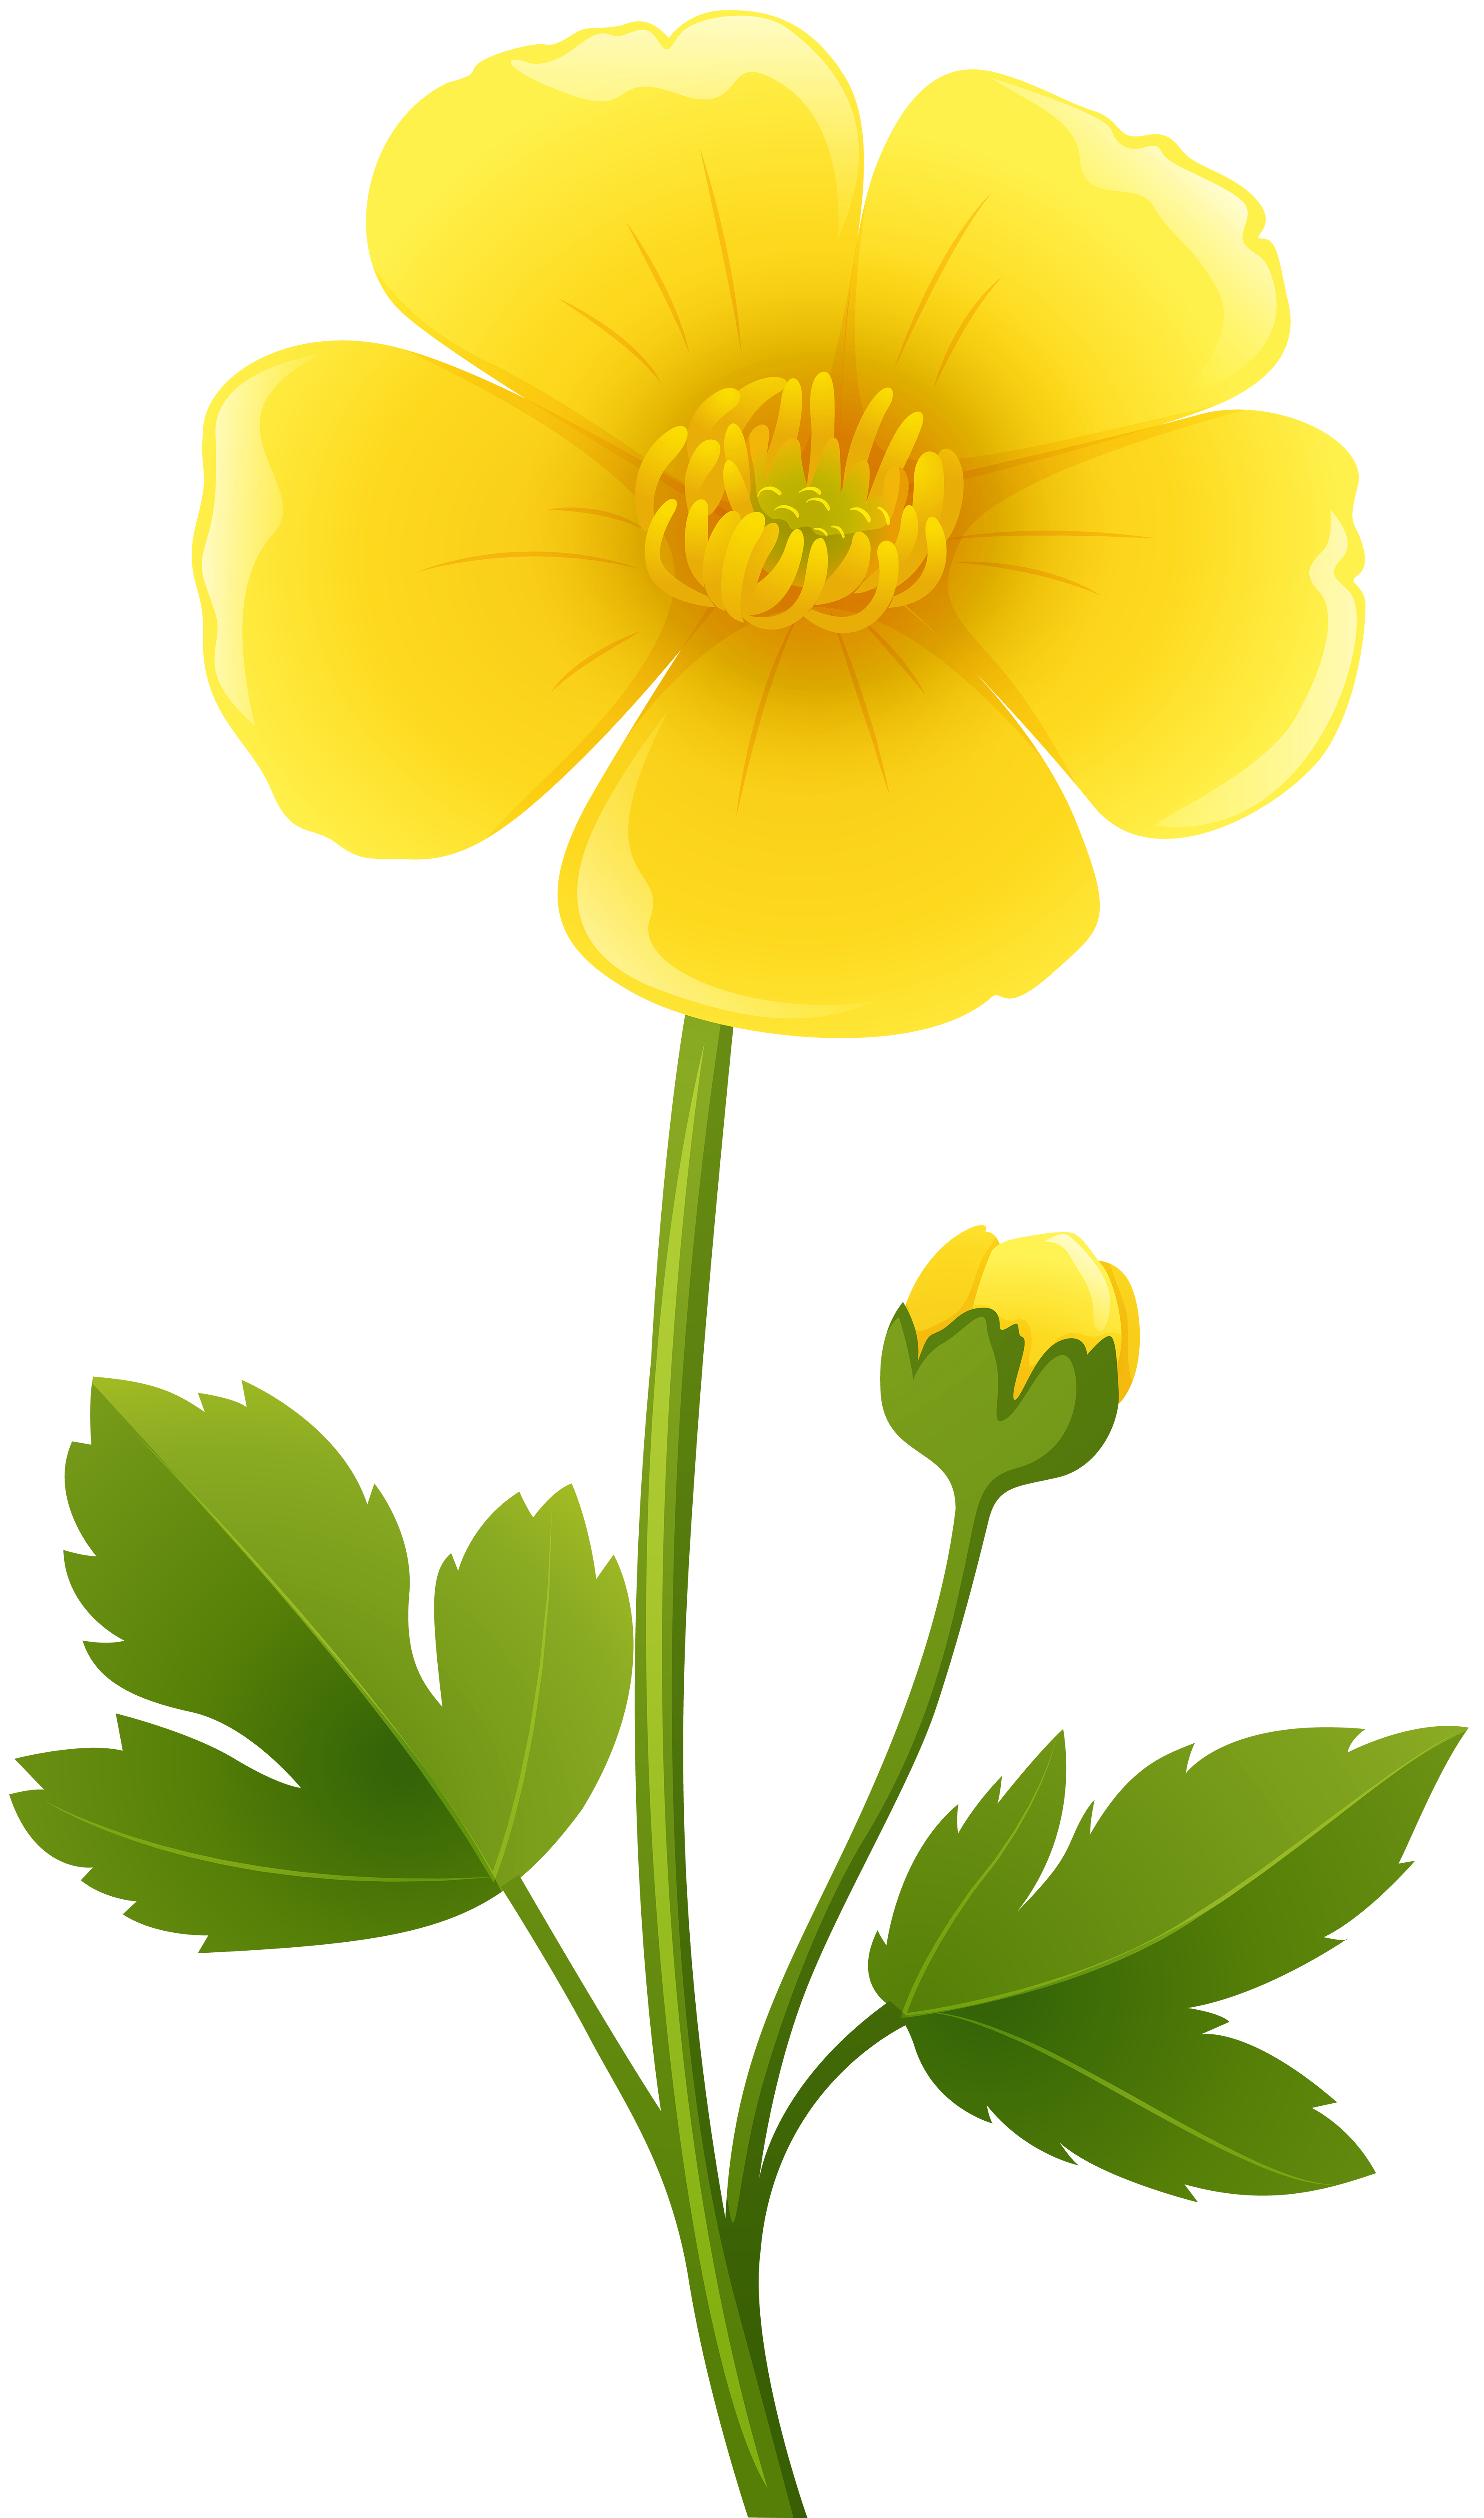 Yellow Flower clipart transparent Image full size  Flower